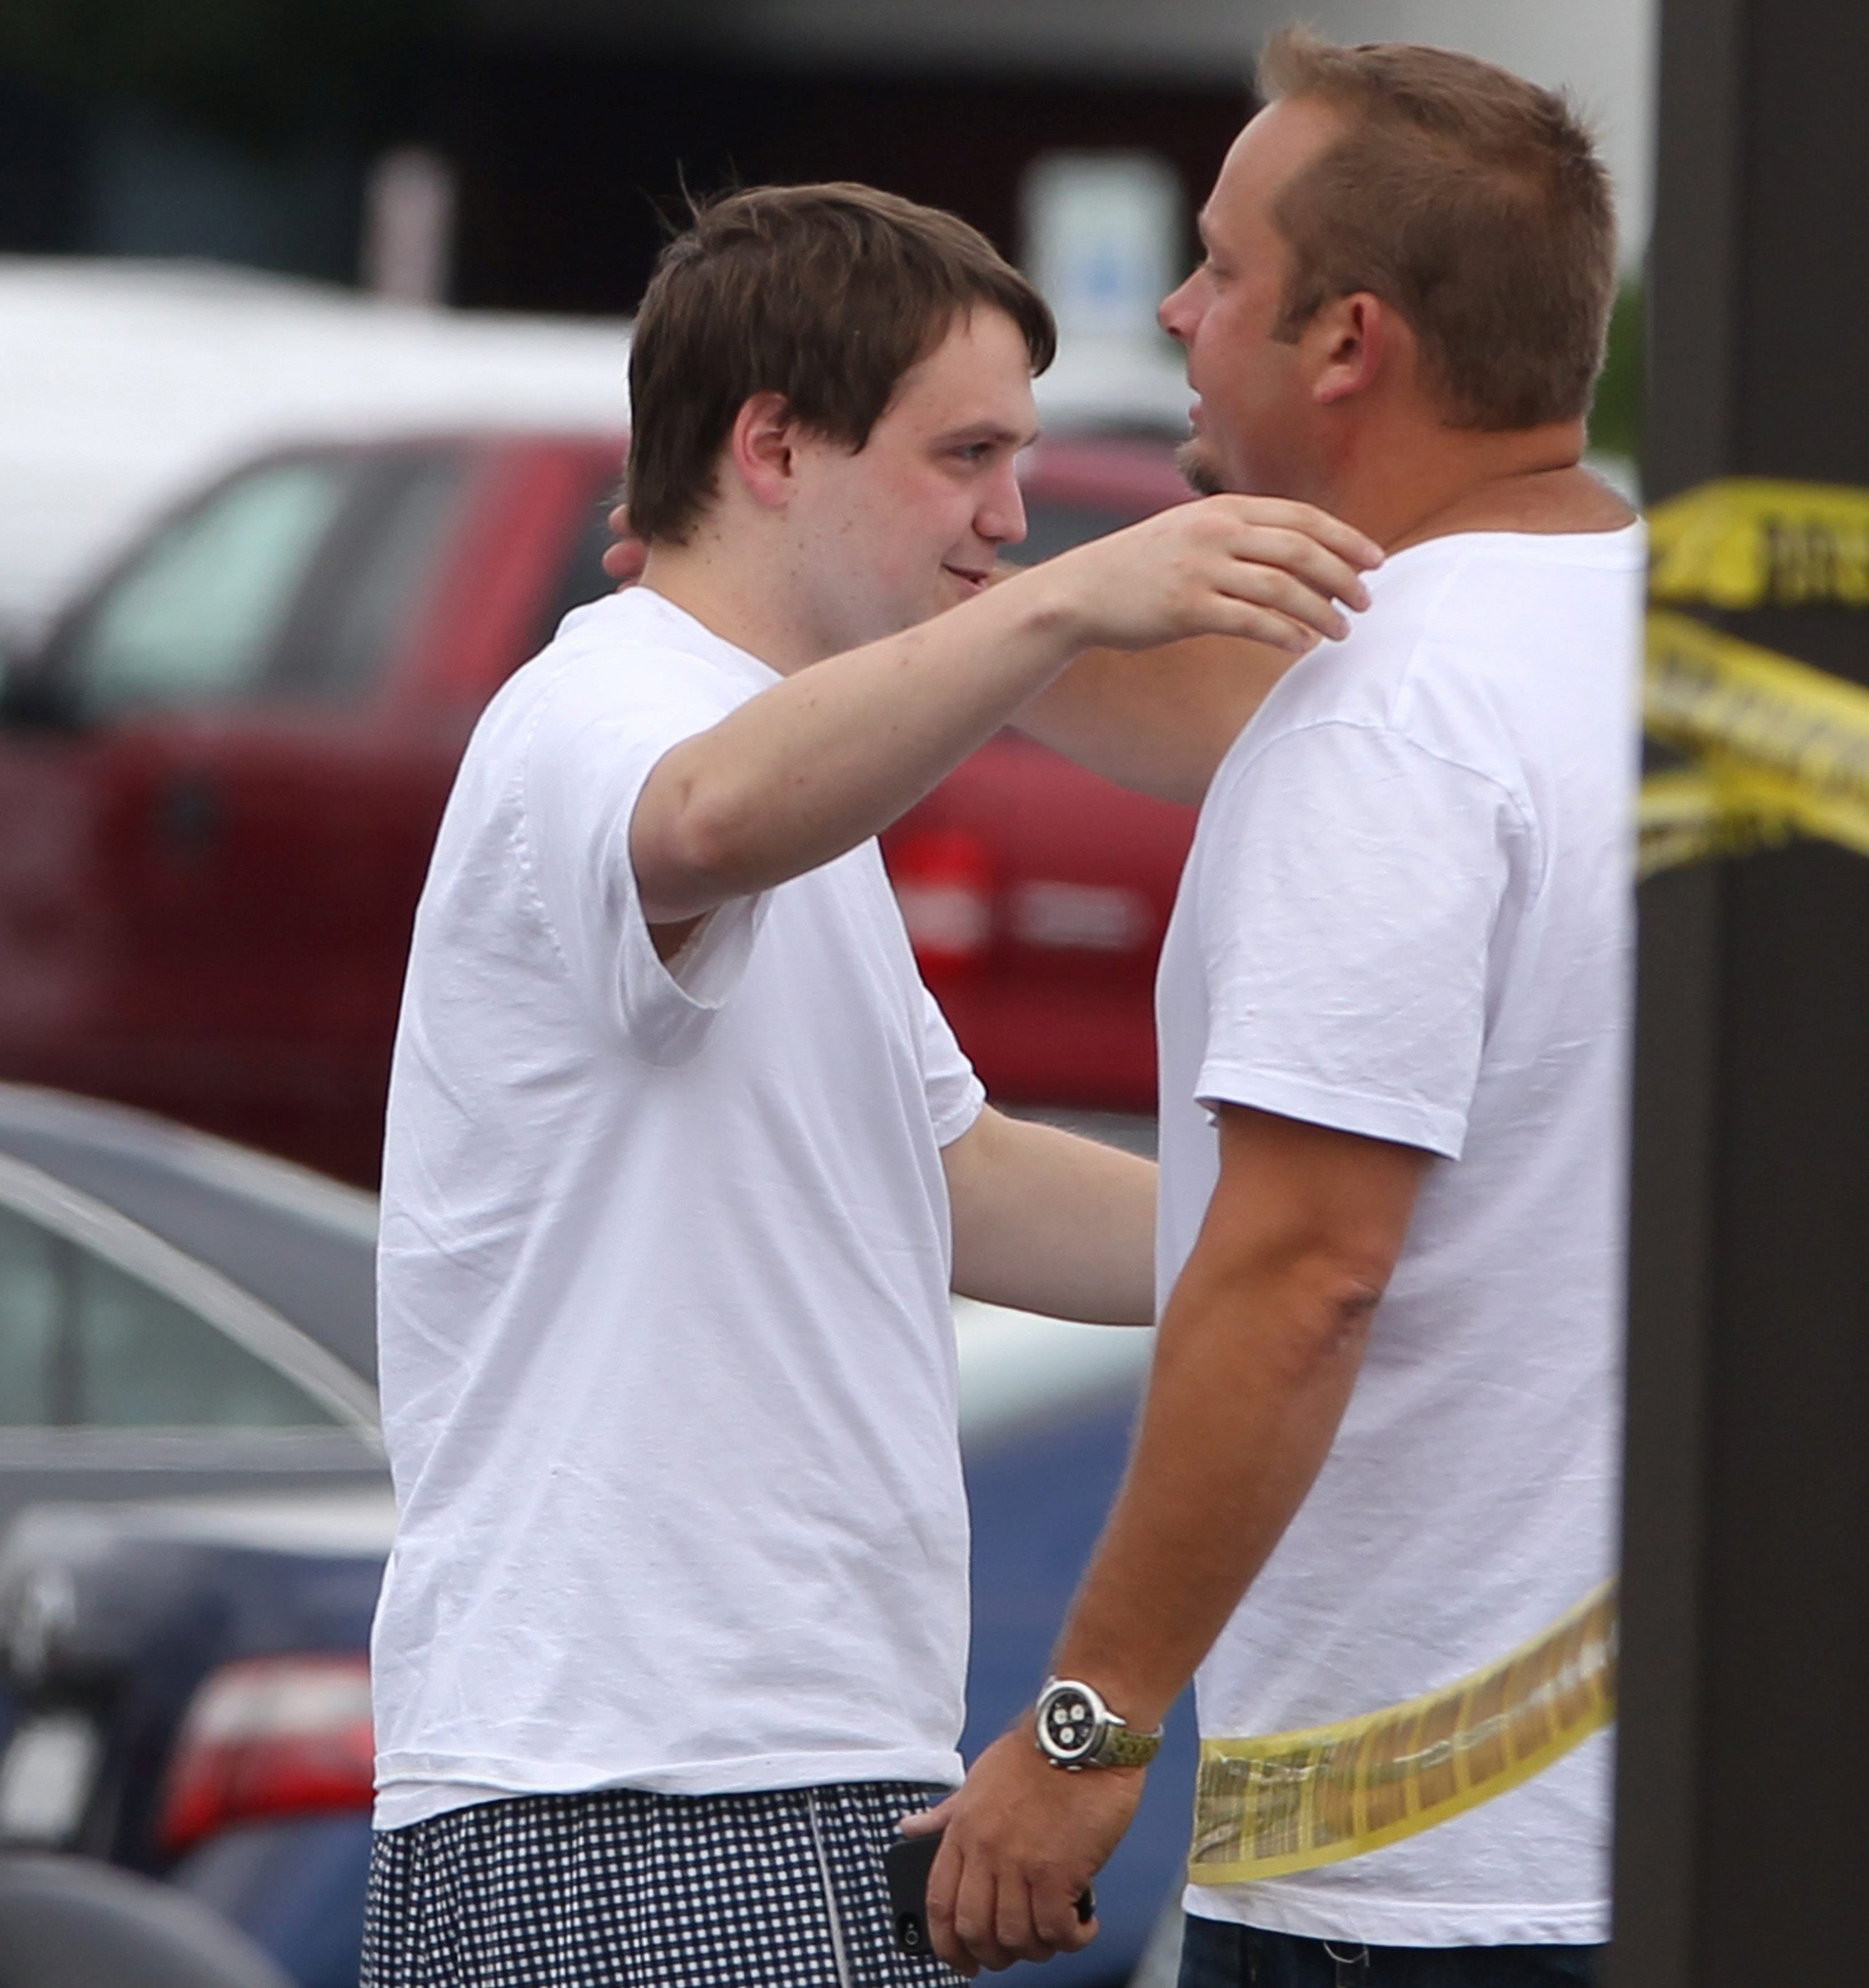 Bernard Grucza, right, is seen in this June photo in the Hamburg Toys R Us parking lot about to comfort another man in the murder of Laurence C. Wells, who was the assistant store manager. Grucza, who was the regional manager and who worked with Wells, was arrested Wednesday in Wells' death.